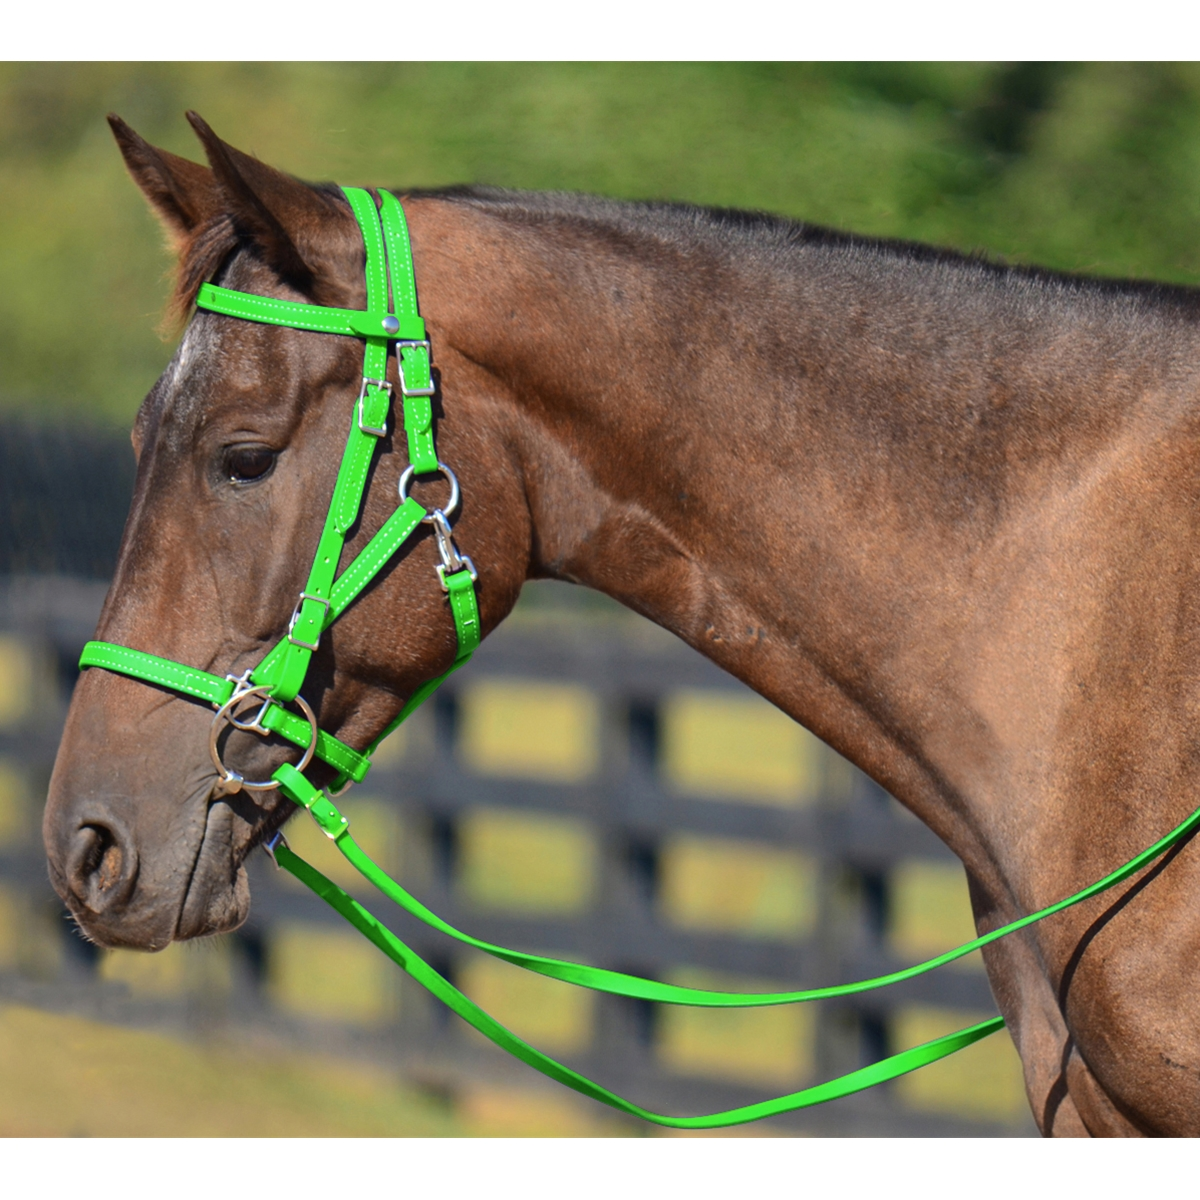 Lime Green Halter Bridle Lead For Horses Two Horse Tack